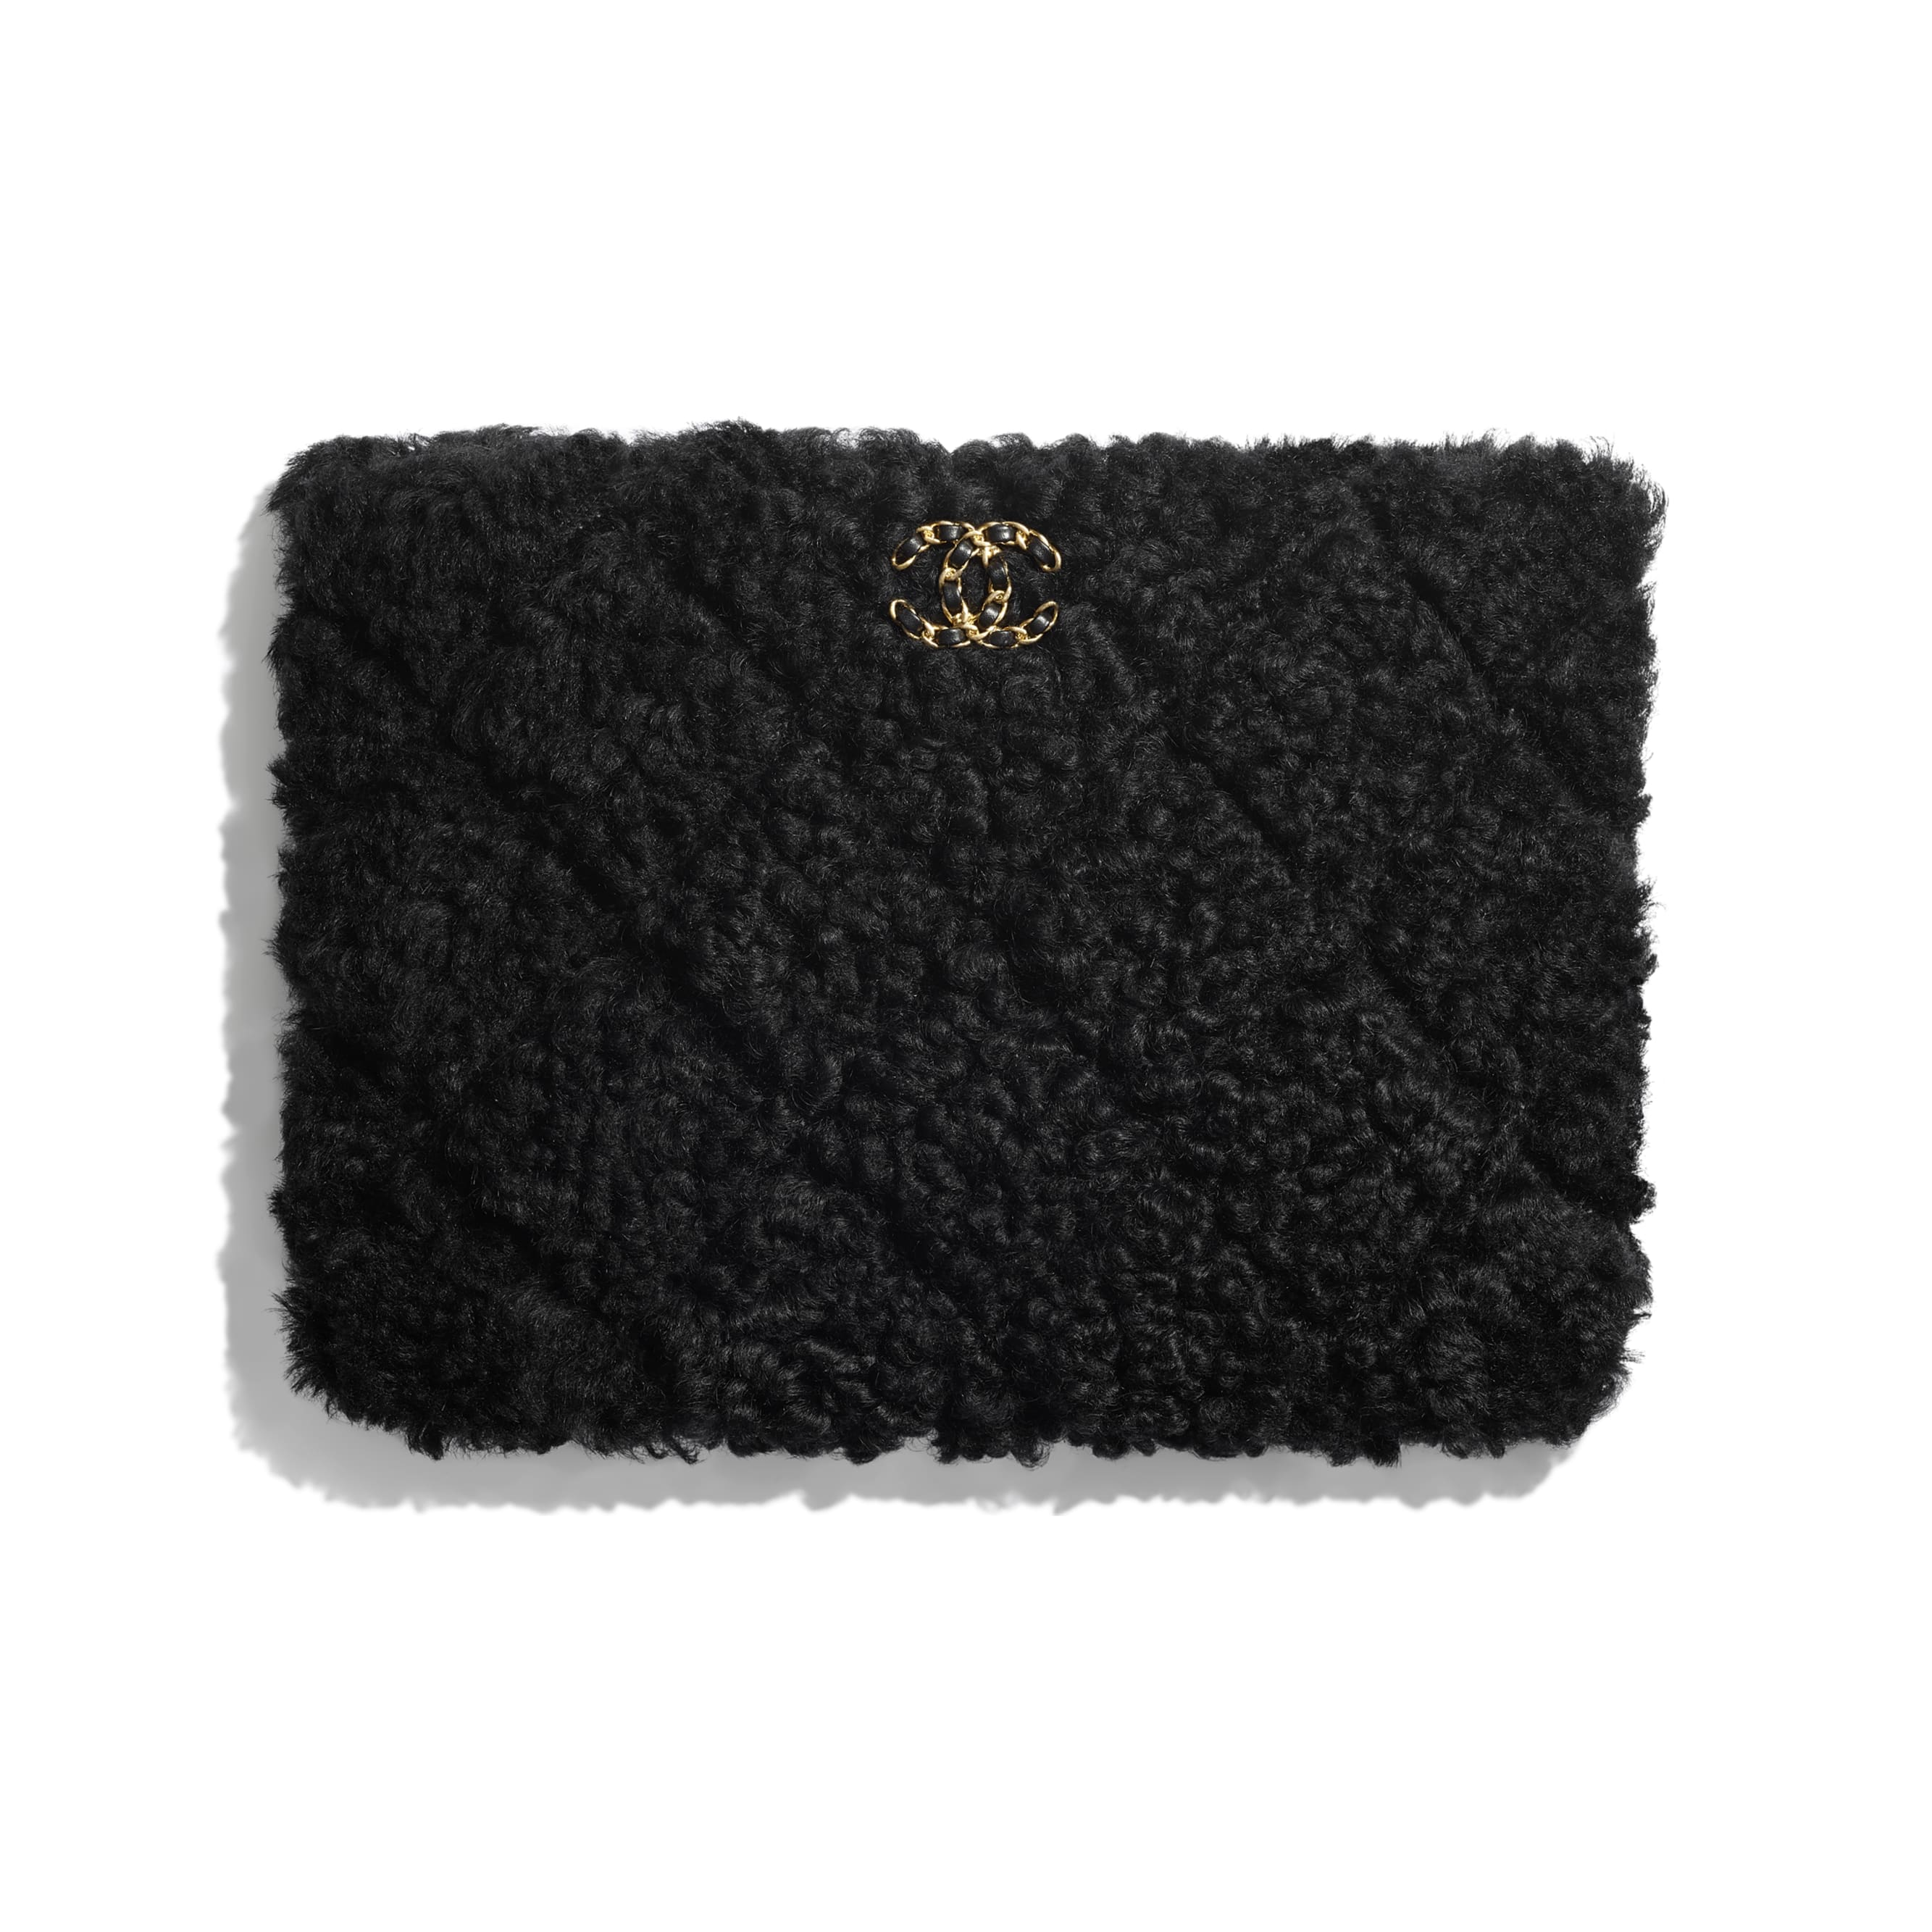 CHANEL 19 Pouch - Black - Shearling Sheepskin, Gold-Tone, Silver-Tone & Ruthenium-Finish Metal - CHANEL - Default view - see standard sized version